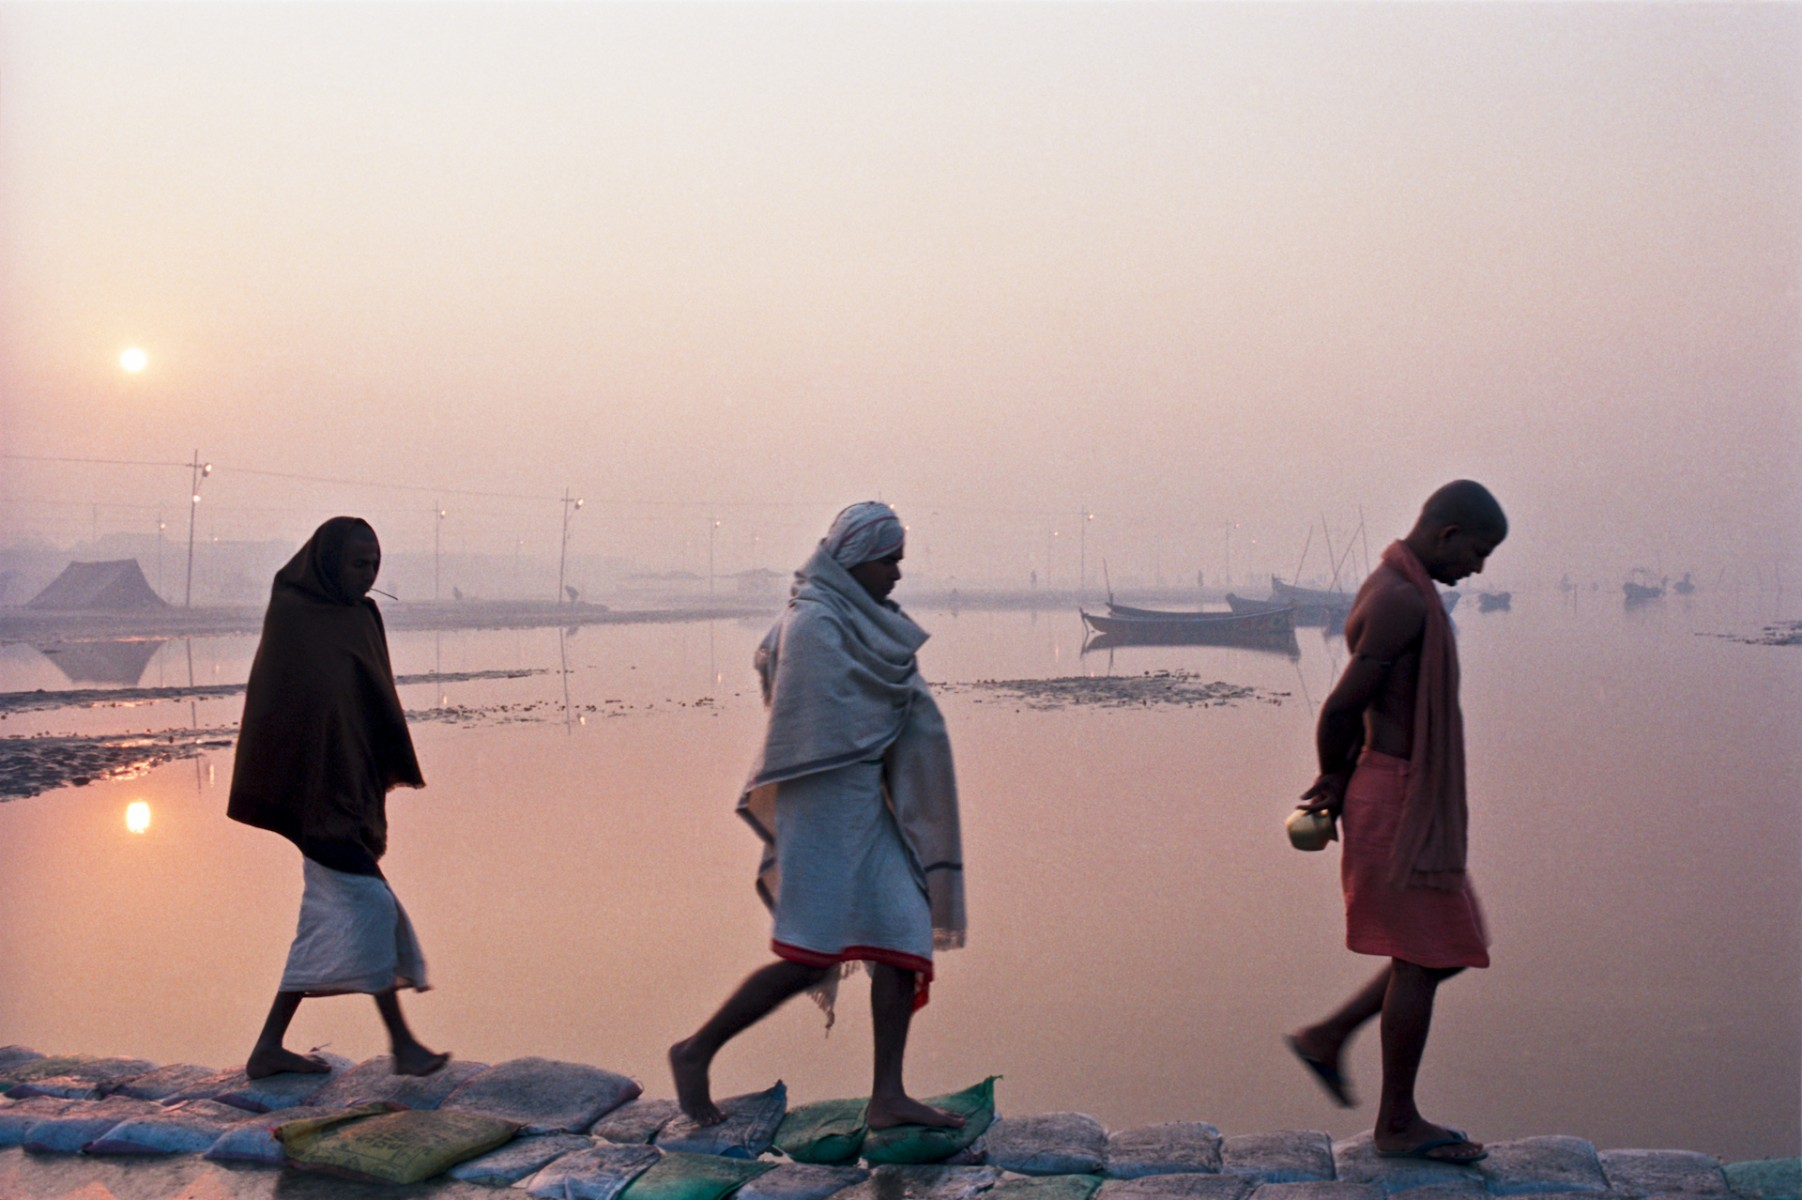 Ganges at Dawn, Kumbh Mela, Allahabad